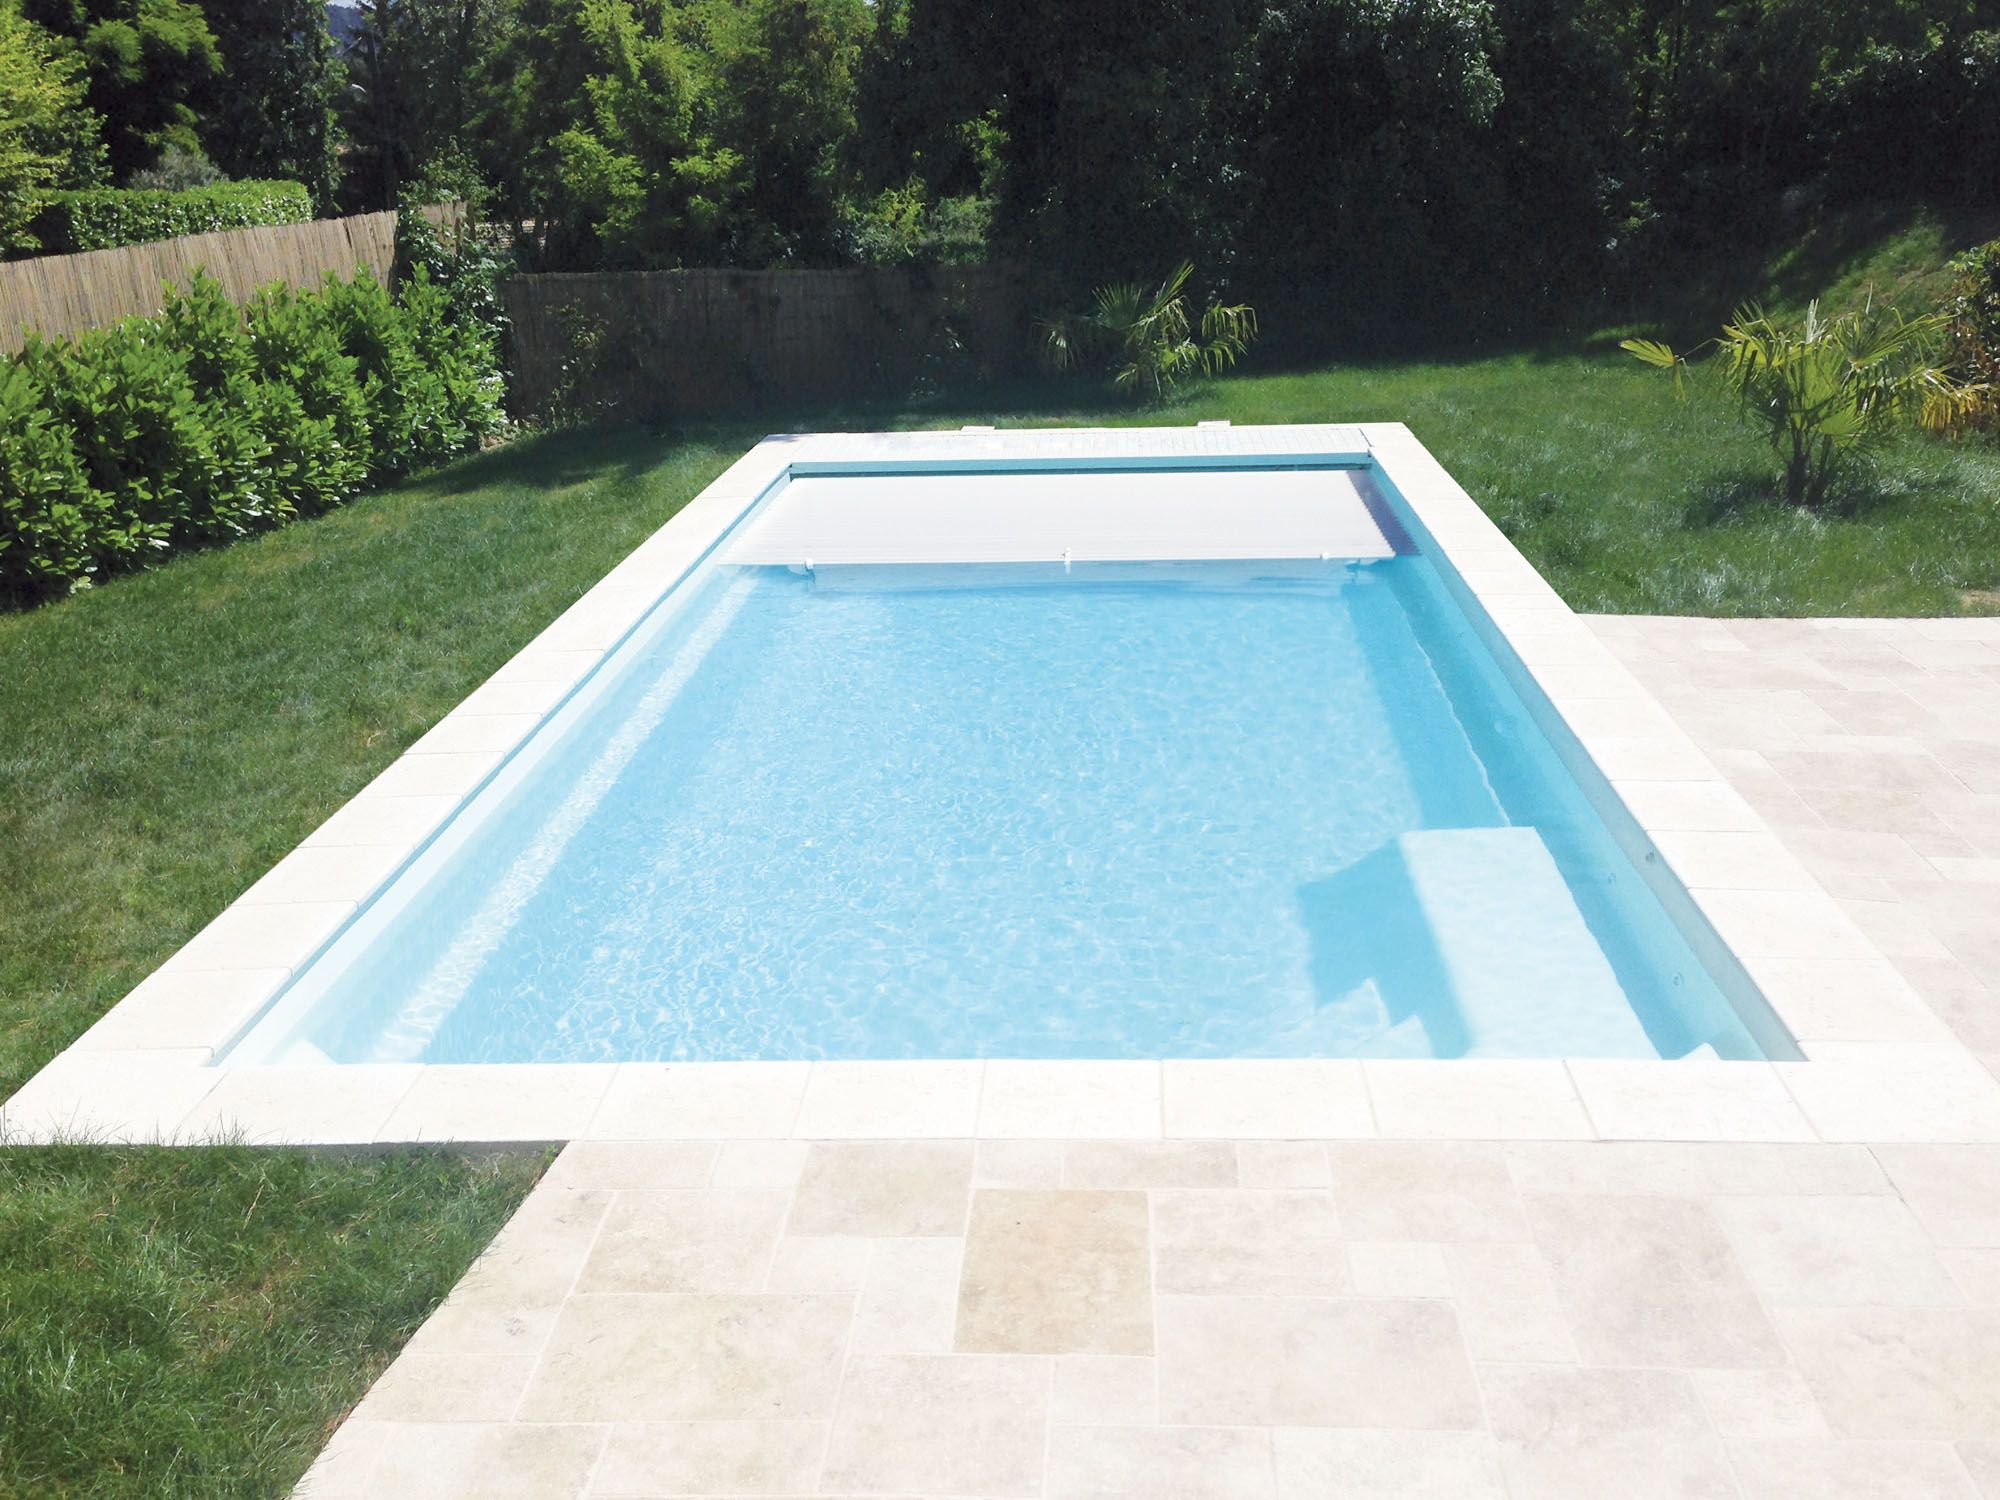 Piscine coque polyester partition 104 fabrication for Piscine coque polyester avec volet immerge